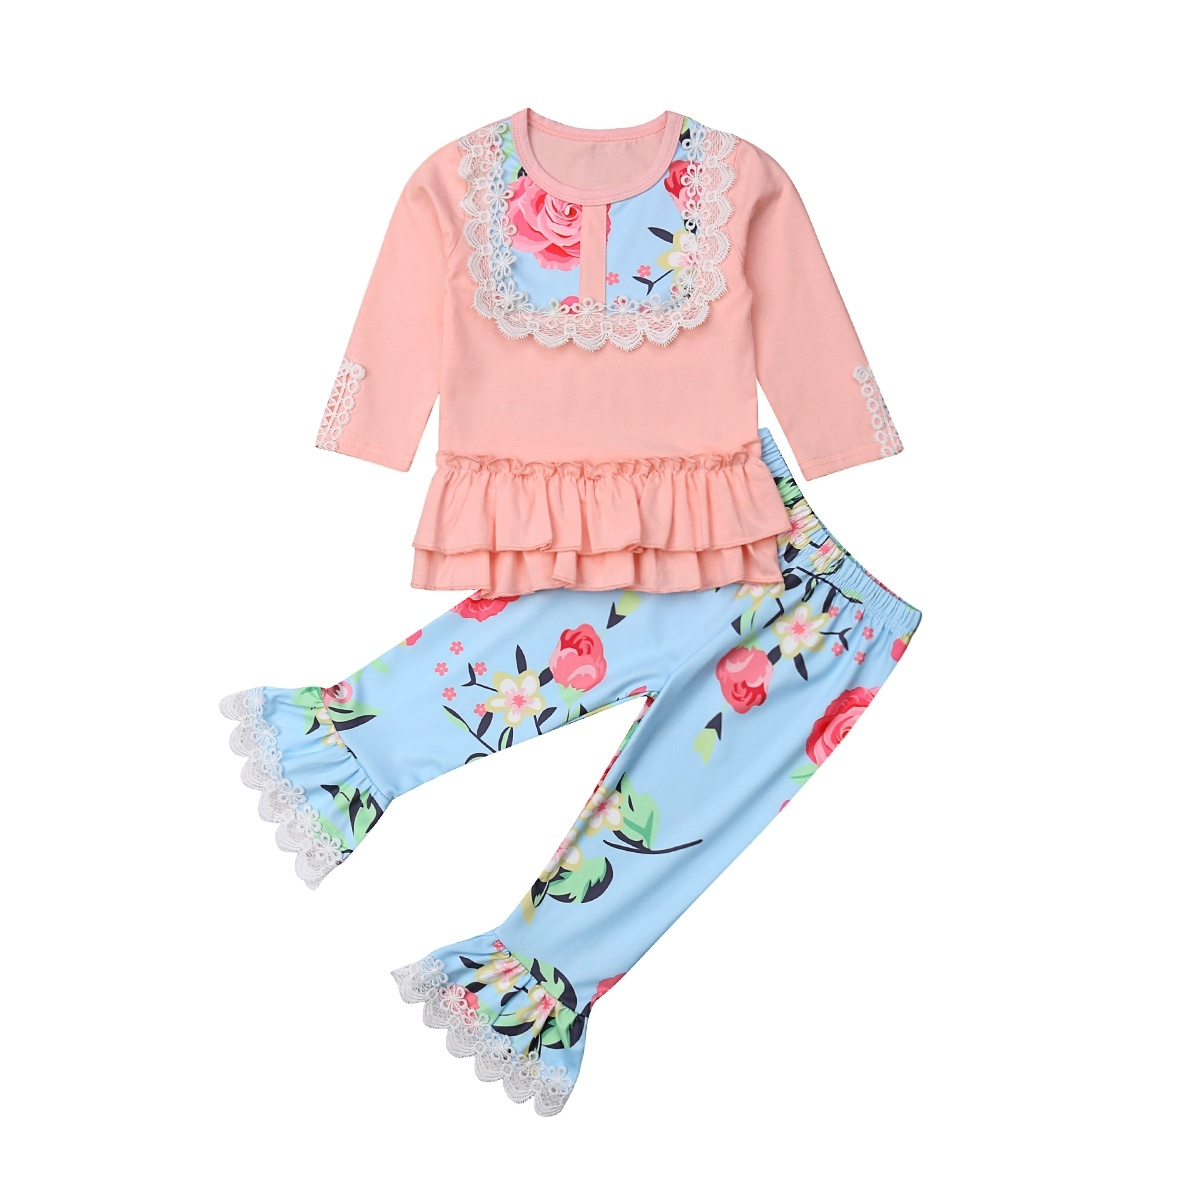 Fashion Toddler Kids Baby Girls Clothes Ruffle Tops Flared Long Pants Outfits